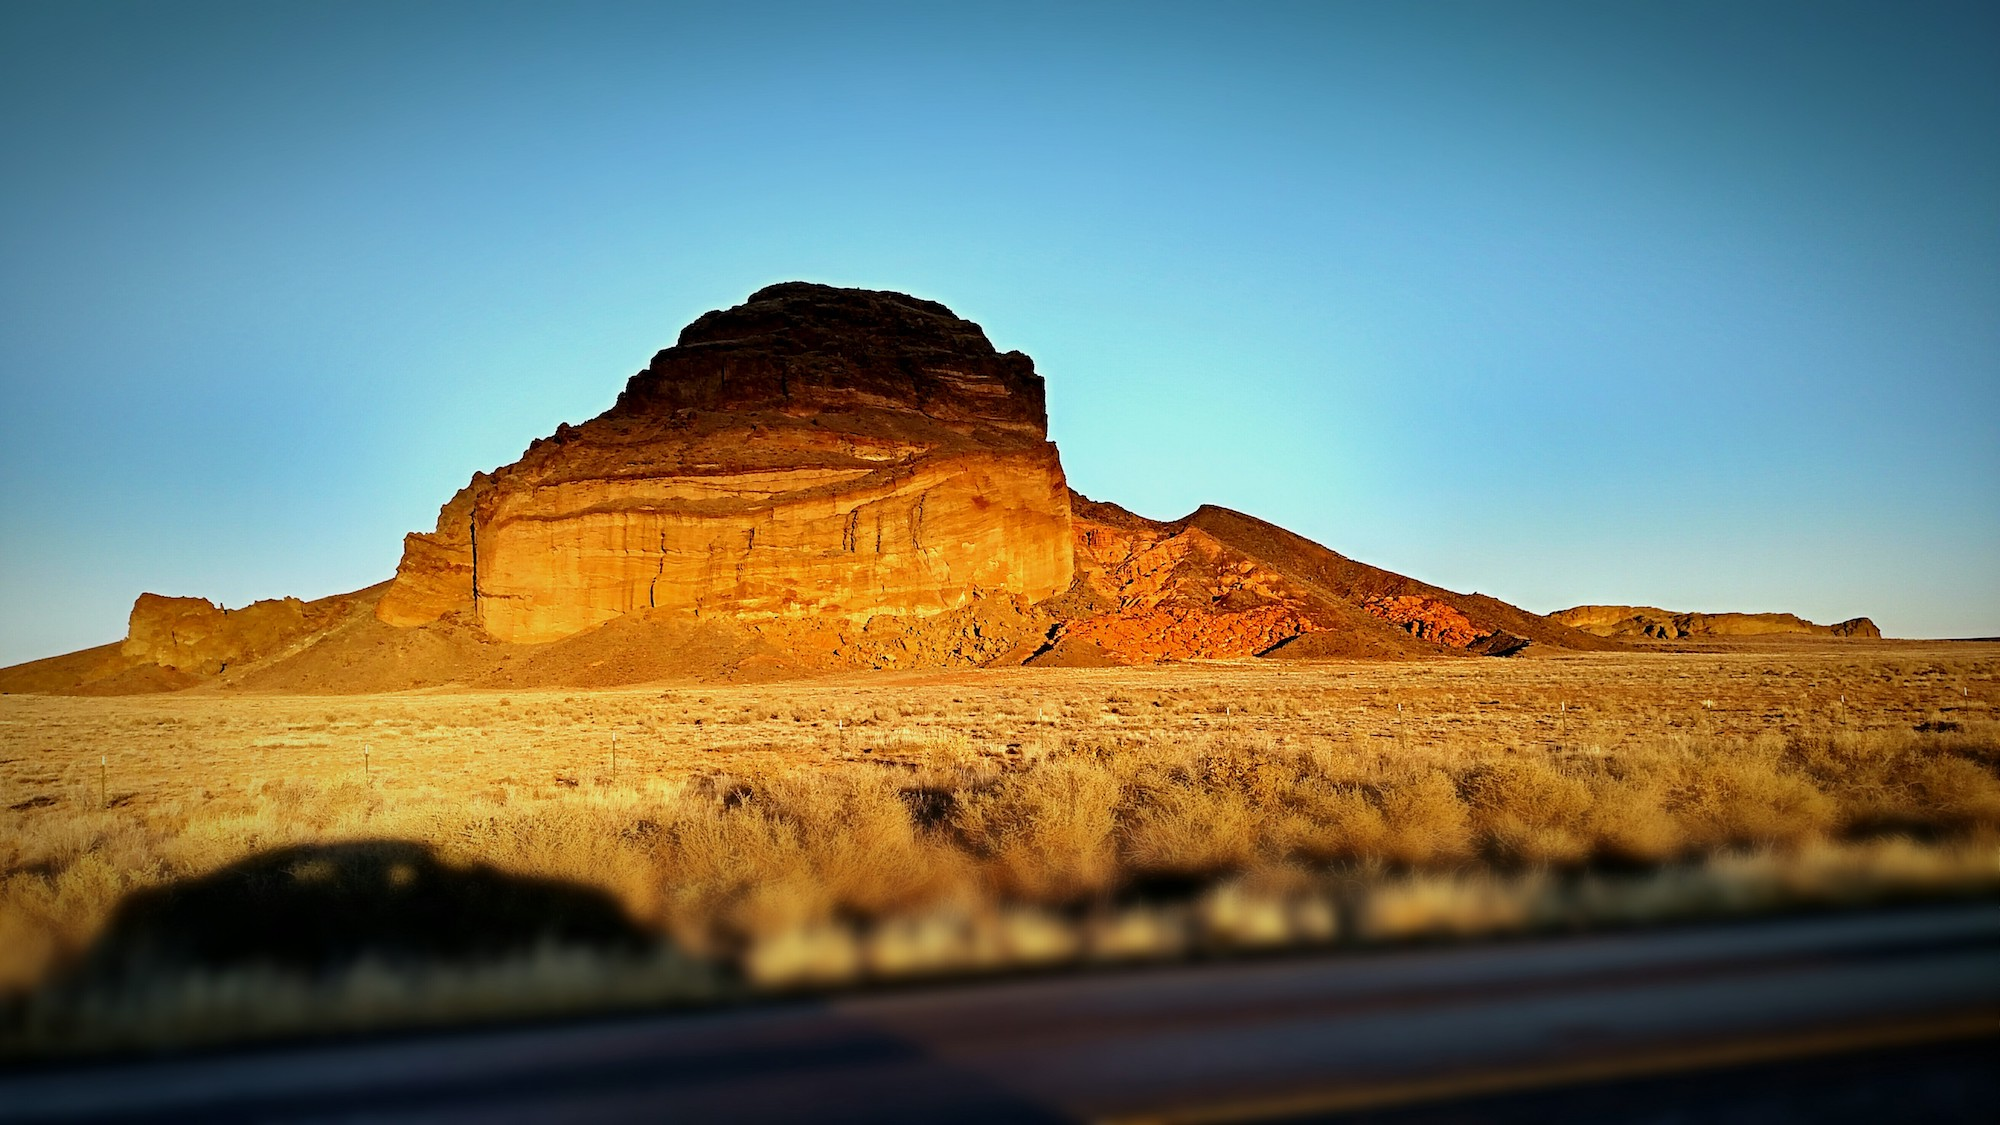 Hopi Reservation, on the I-77 north in Arizona